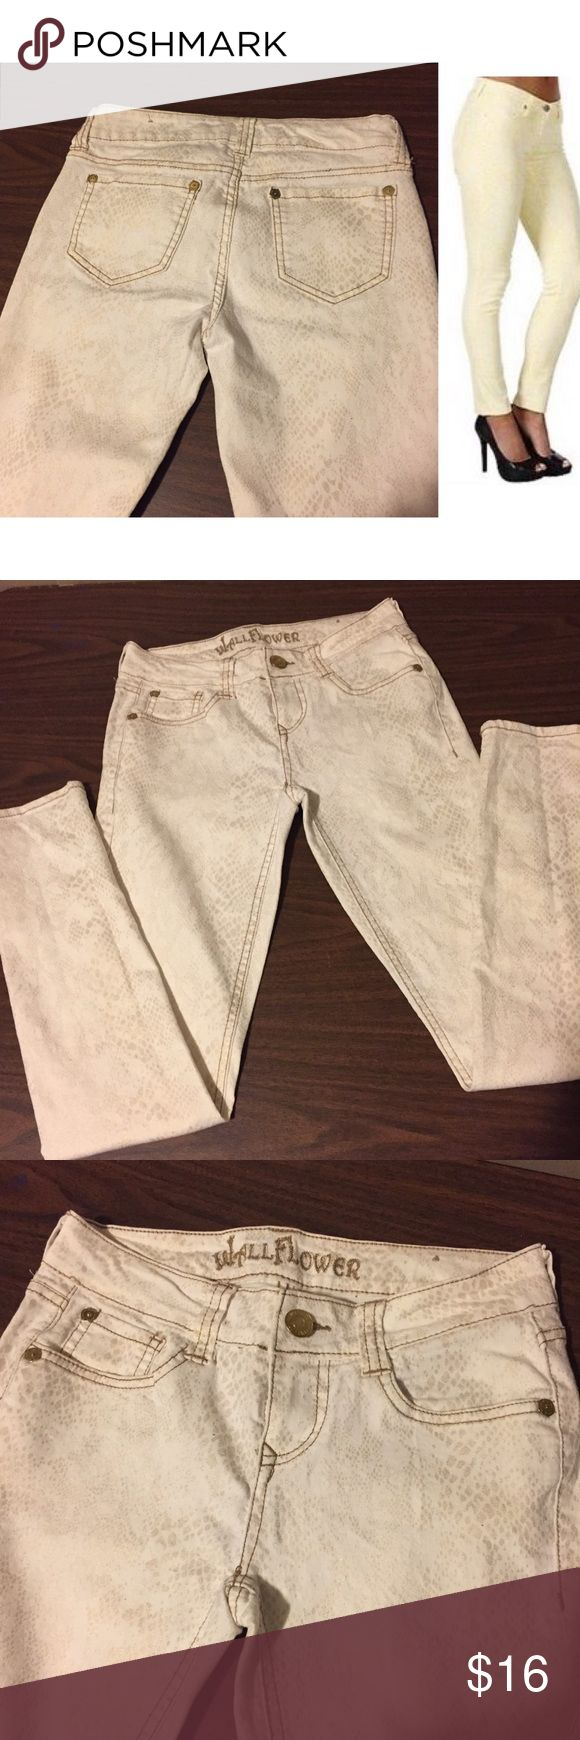 Snake print snakeskin jeans Cream/white colored jeans with metallic gold snake print. Excellent used condition. Please comment below if you have any questions:) Wallflower Jeans Skinny